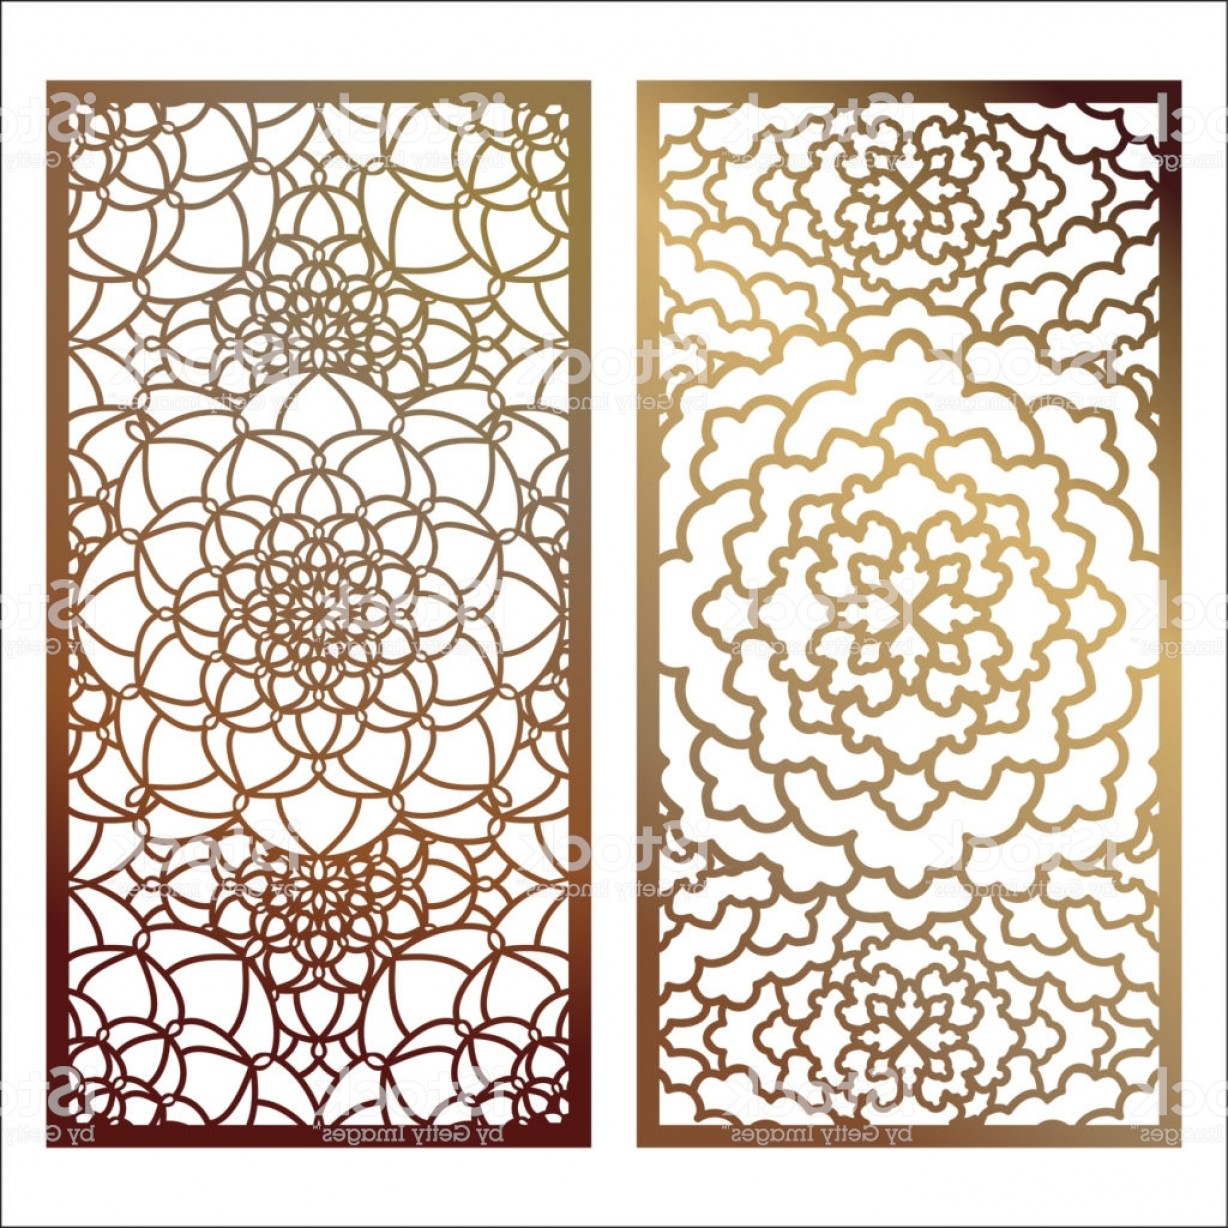 Wrought Iron Vector For CNC: Set Of Vector Laser Cut Panel Pattern Template For Decorative Panel Wall Panels Or Gm